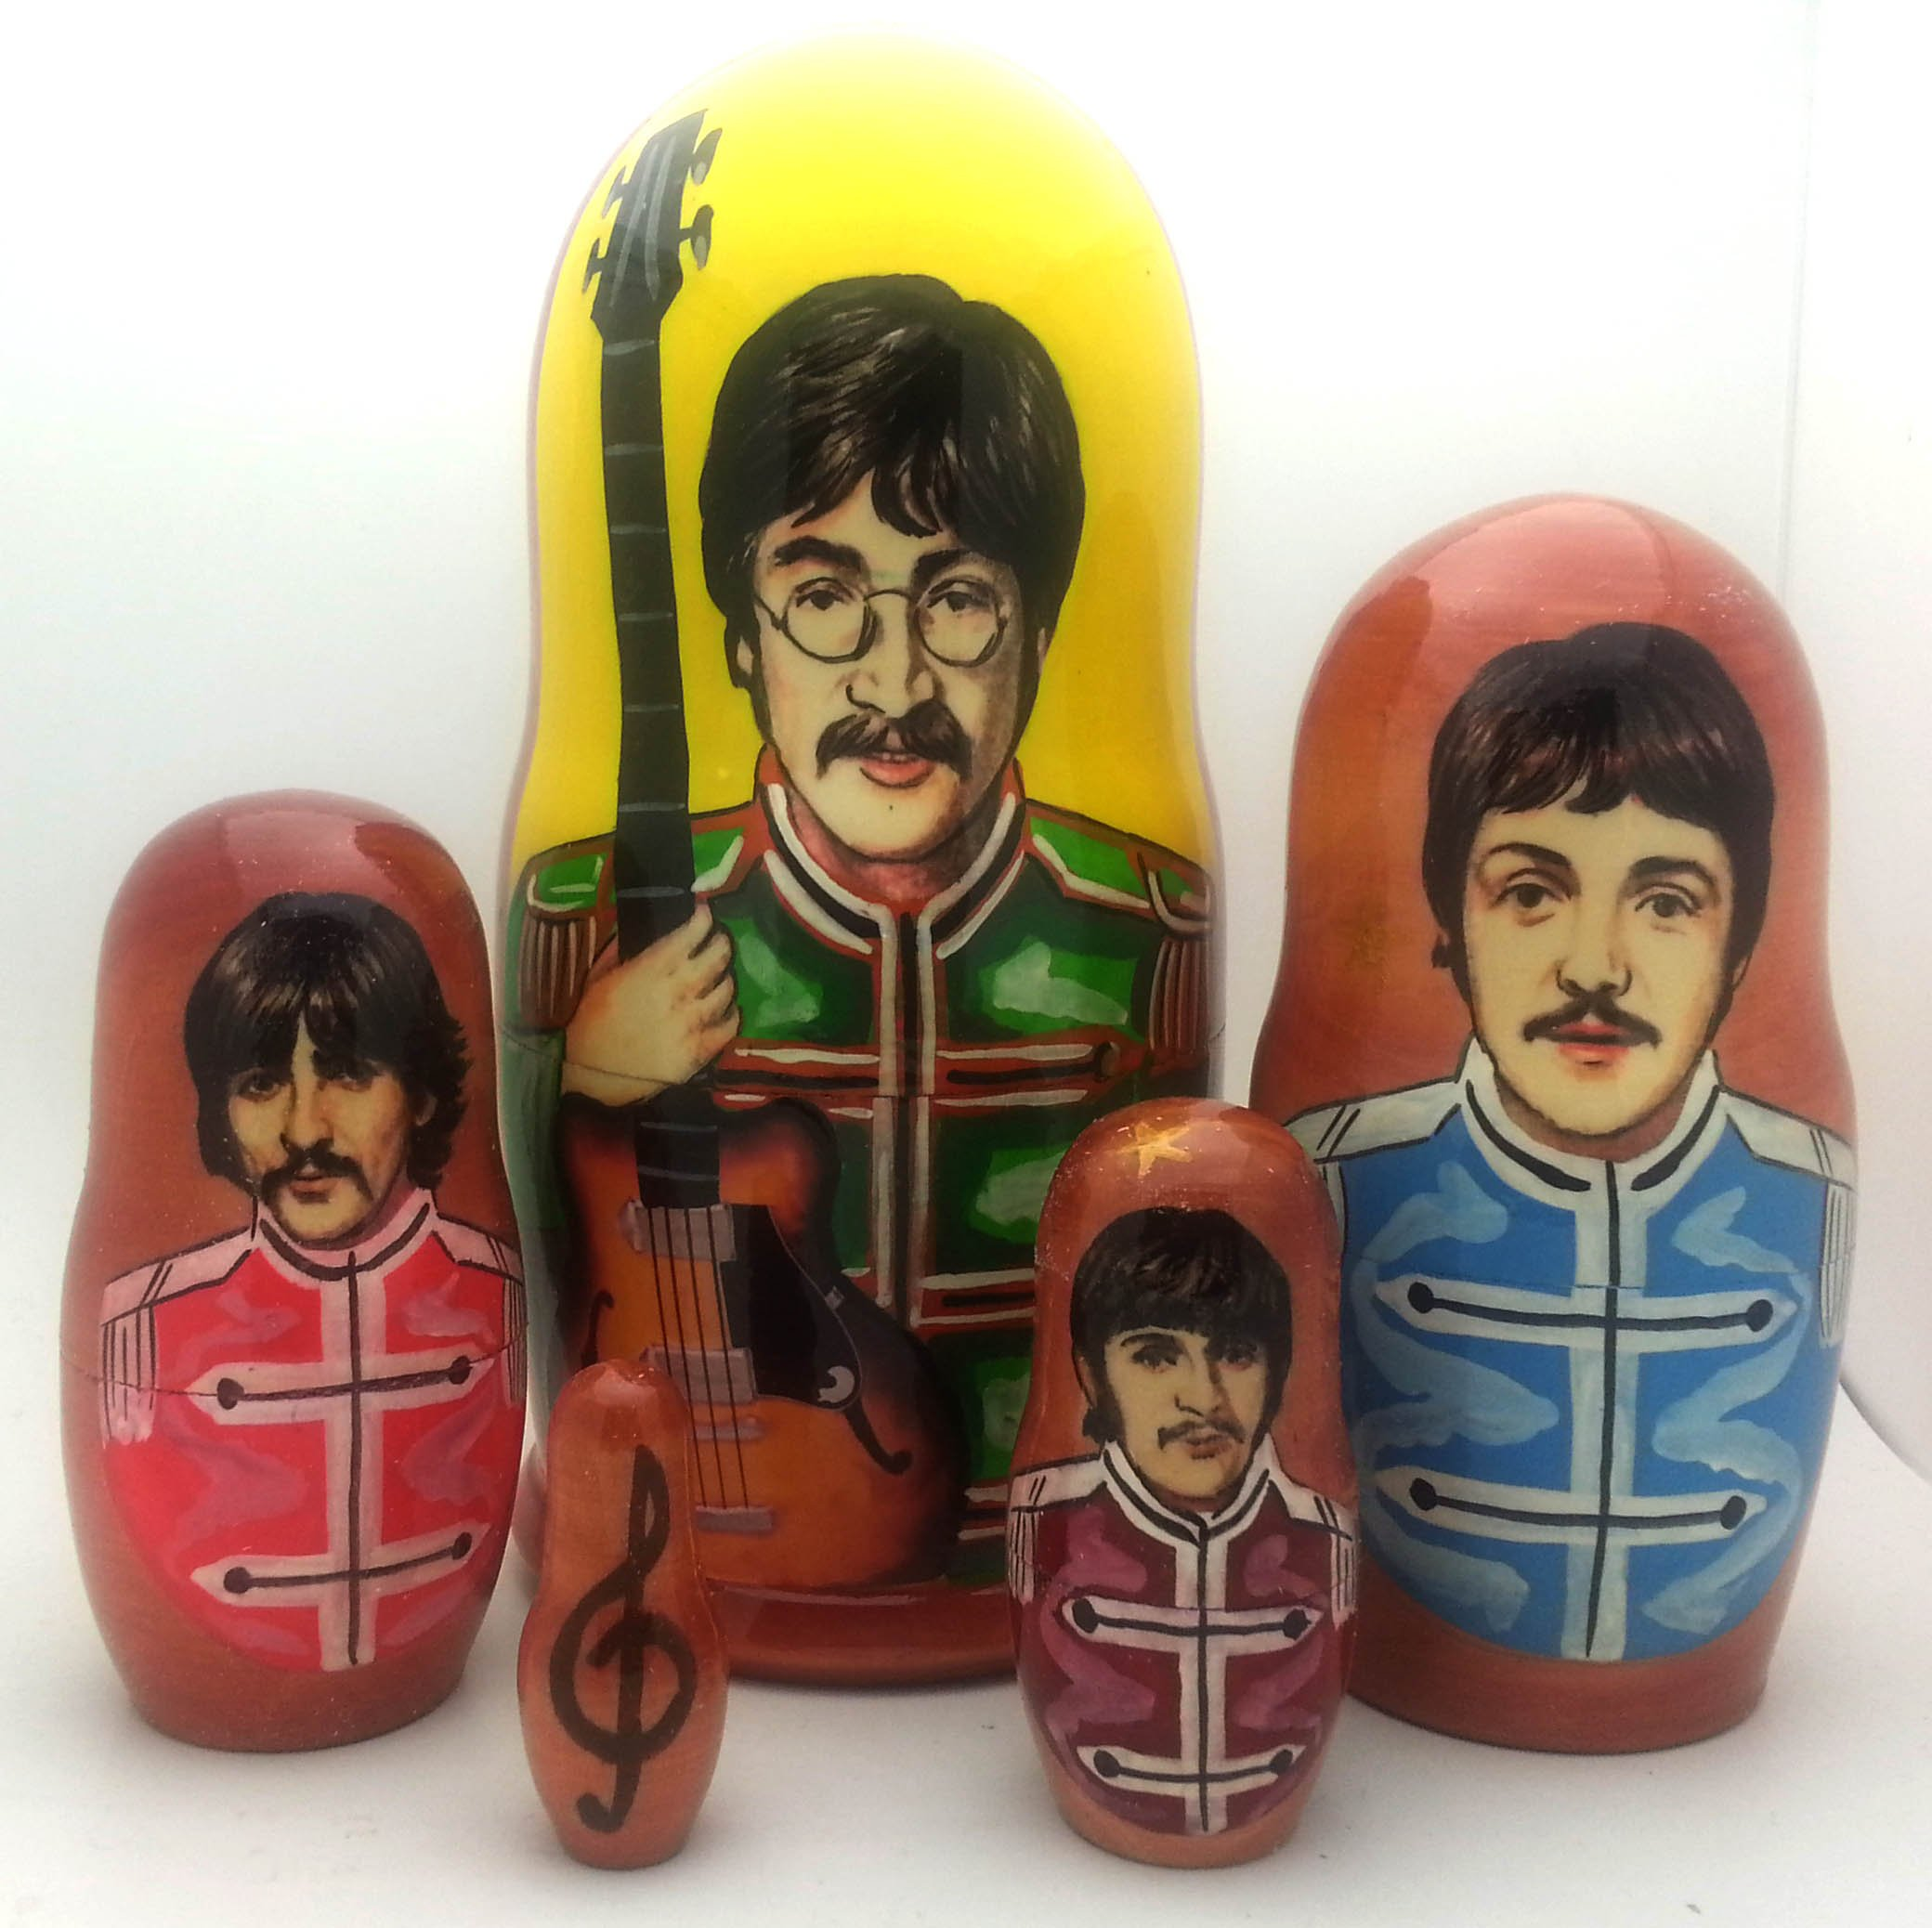 Beatles Sergent Pepper Russian Nesting dolls 5 piece DOLL Set 7'' by The Beatles (Image #1)